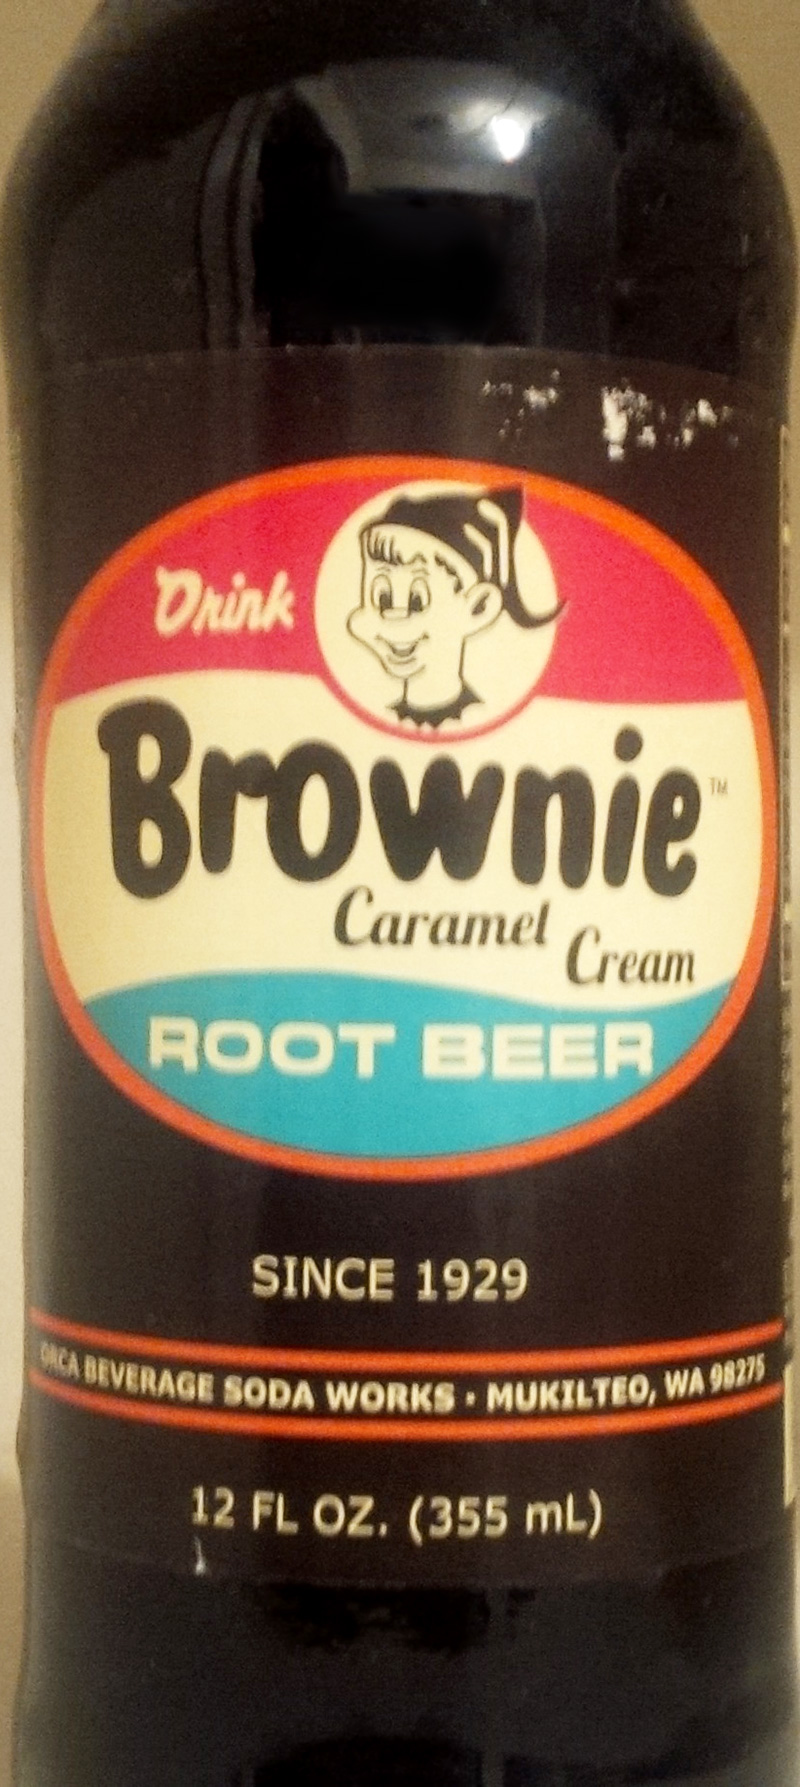 Brownie's Caramel Cream Root Beer